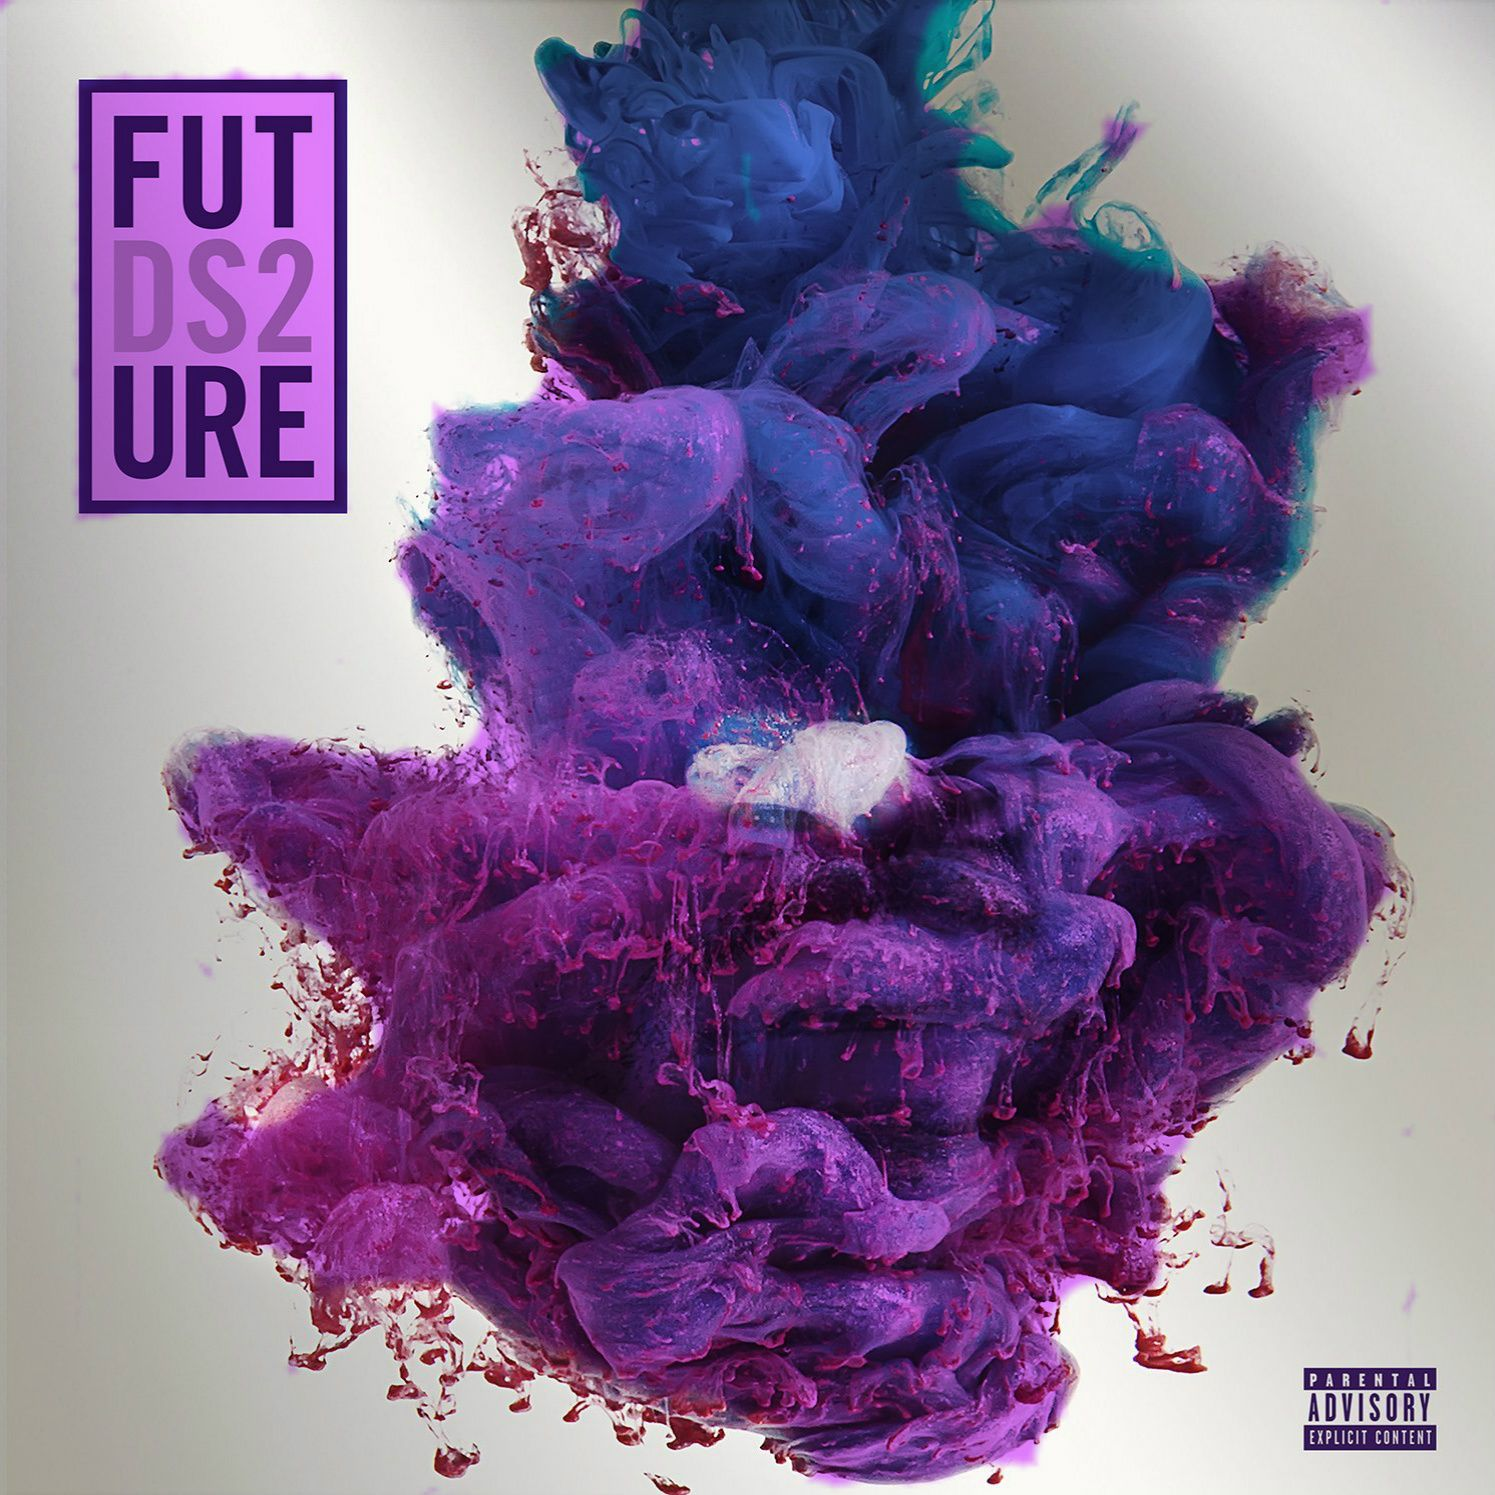 DS2 (Deluxe) by Future on Apple Music